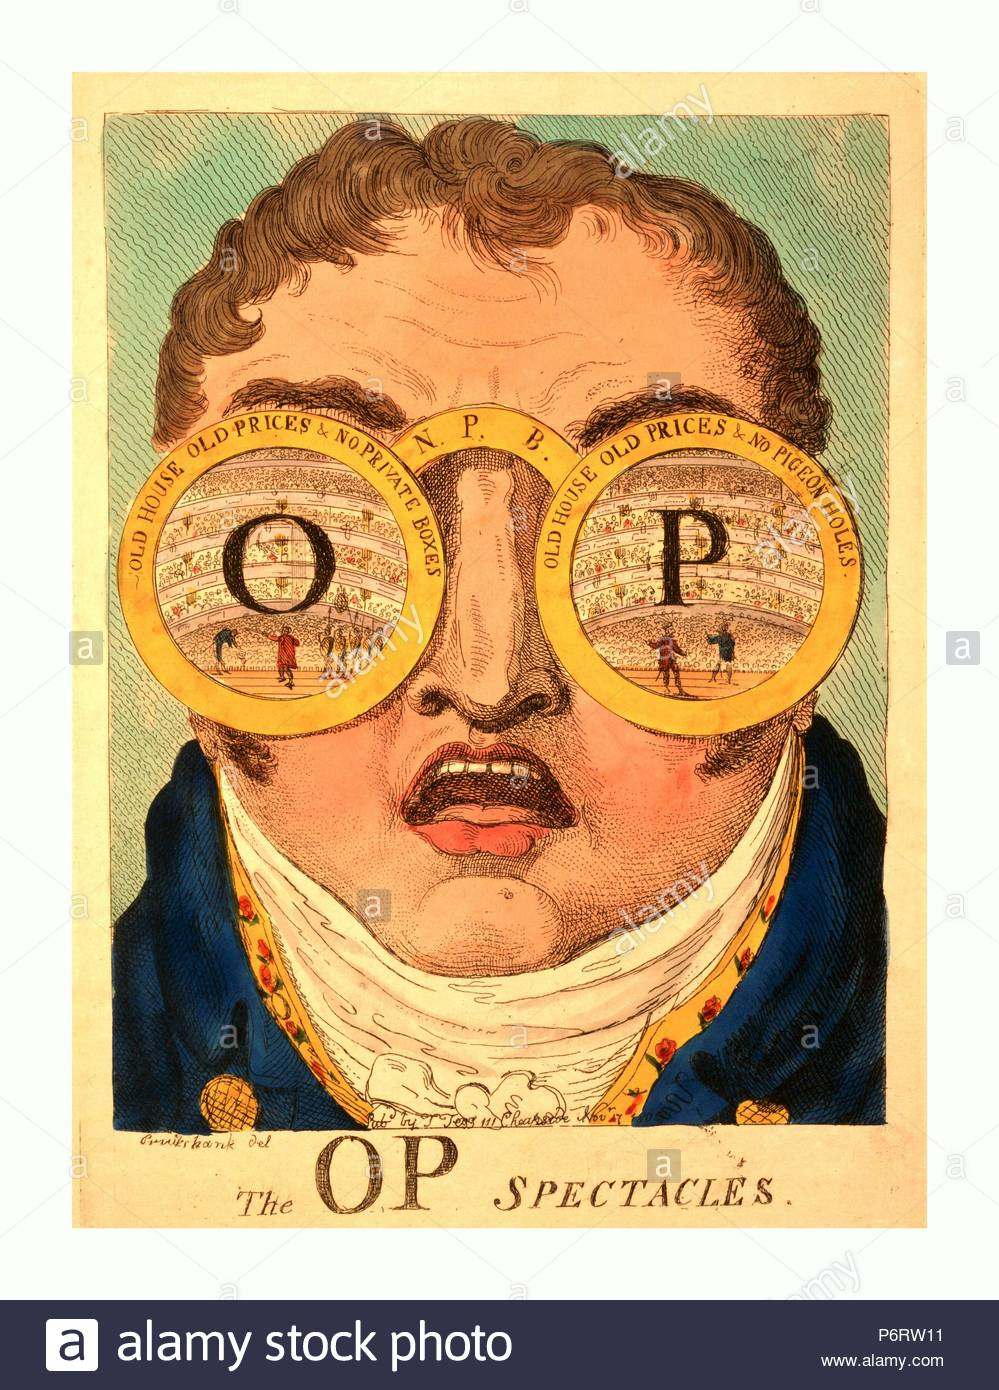 The OP spectacles, Cruikshank, George, 1792-1878, artist, engraving 1809, Satire showing head of Clifford with two circles representing huge spectacles, Old house old prices & no private boxes and Old house old prices & no pigeon holes, over his eyes. Each circle contains a symmetrical view of Covent Garden Theatre seen from the stage. Superimposed on the middle of one circle is a large O and in the other circle a large P. - Stock Image